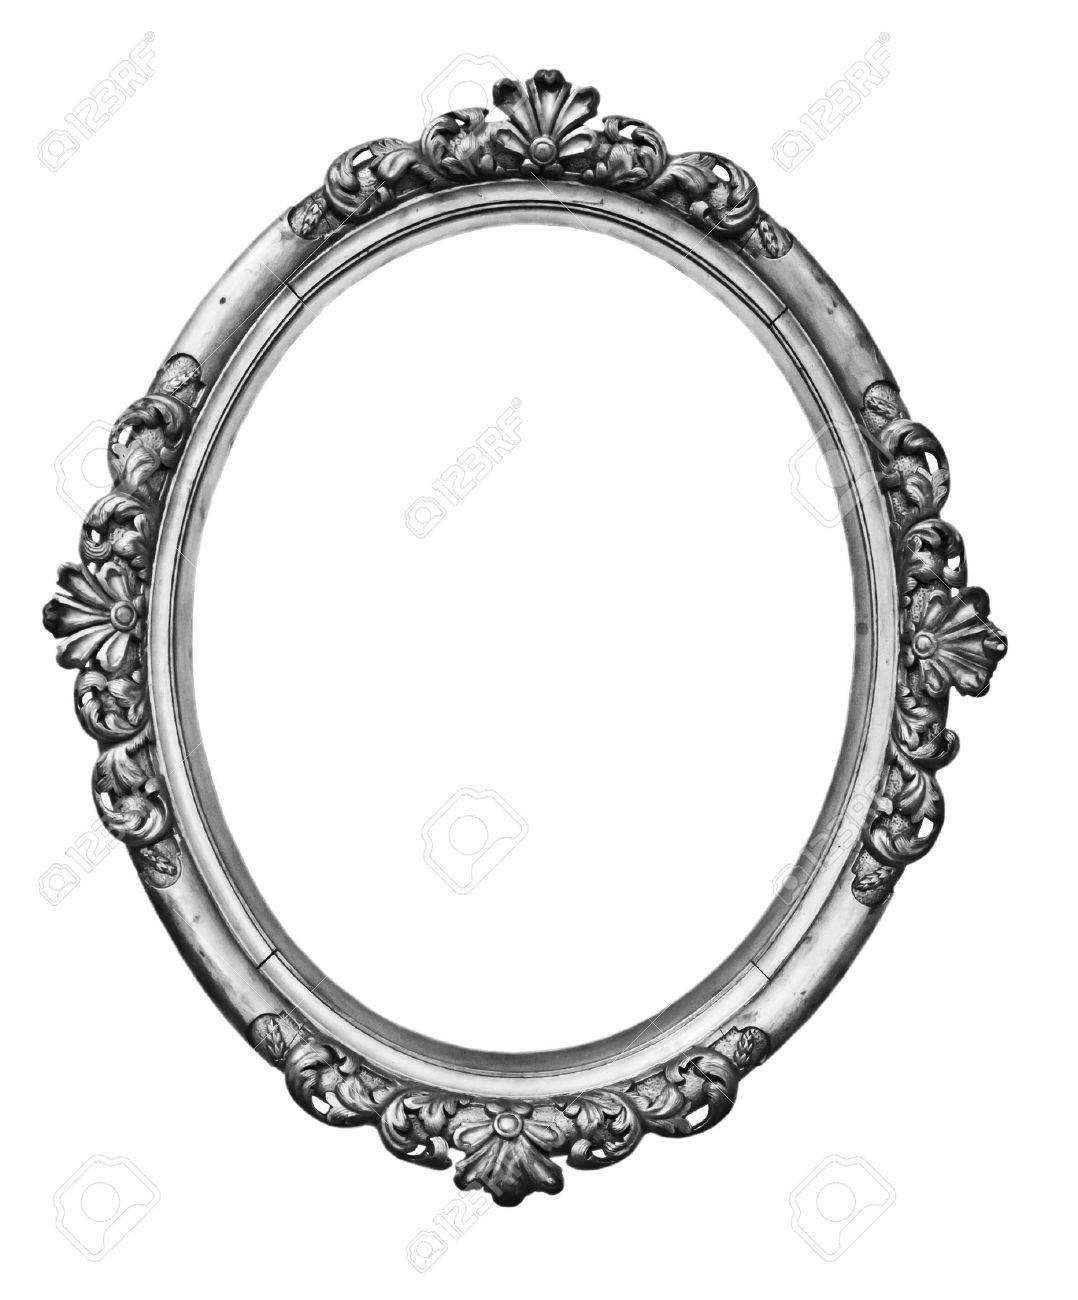 Vintage silver oval frame stock photo picture and royalty free vintage silver oval frame stock photo 33778745 jeuxipadfo Images